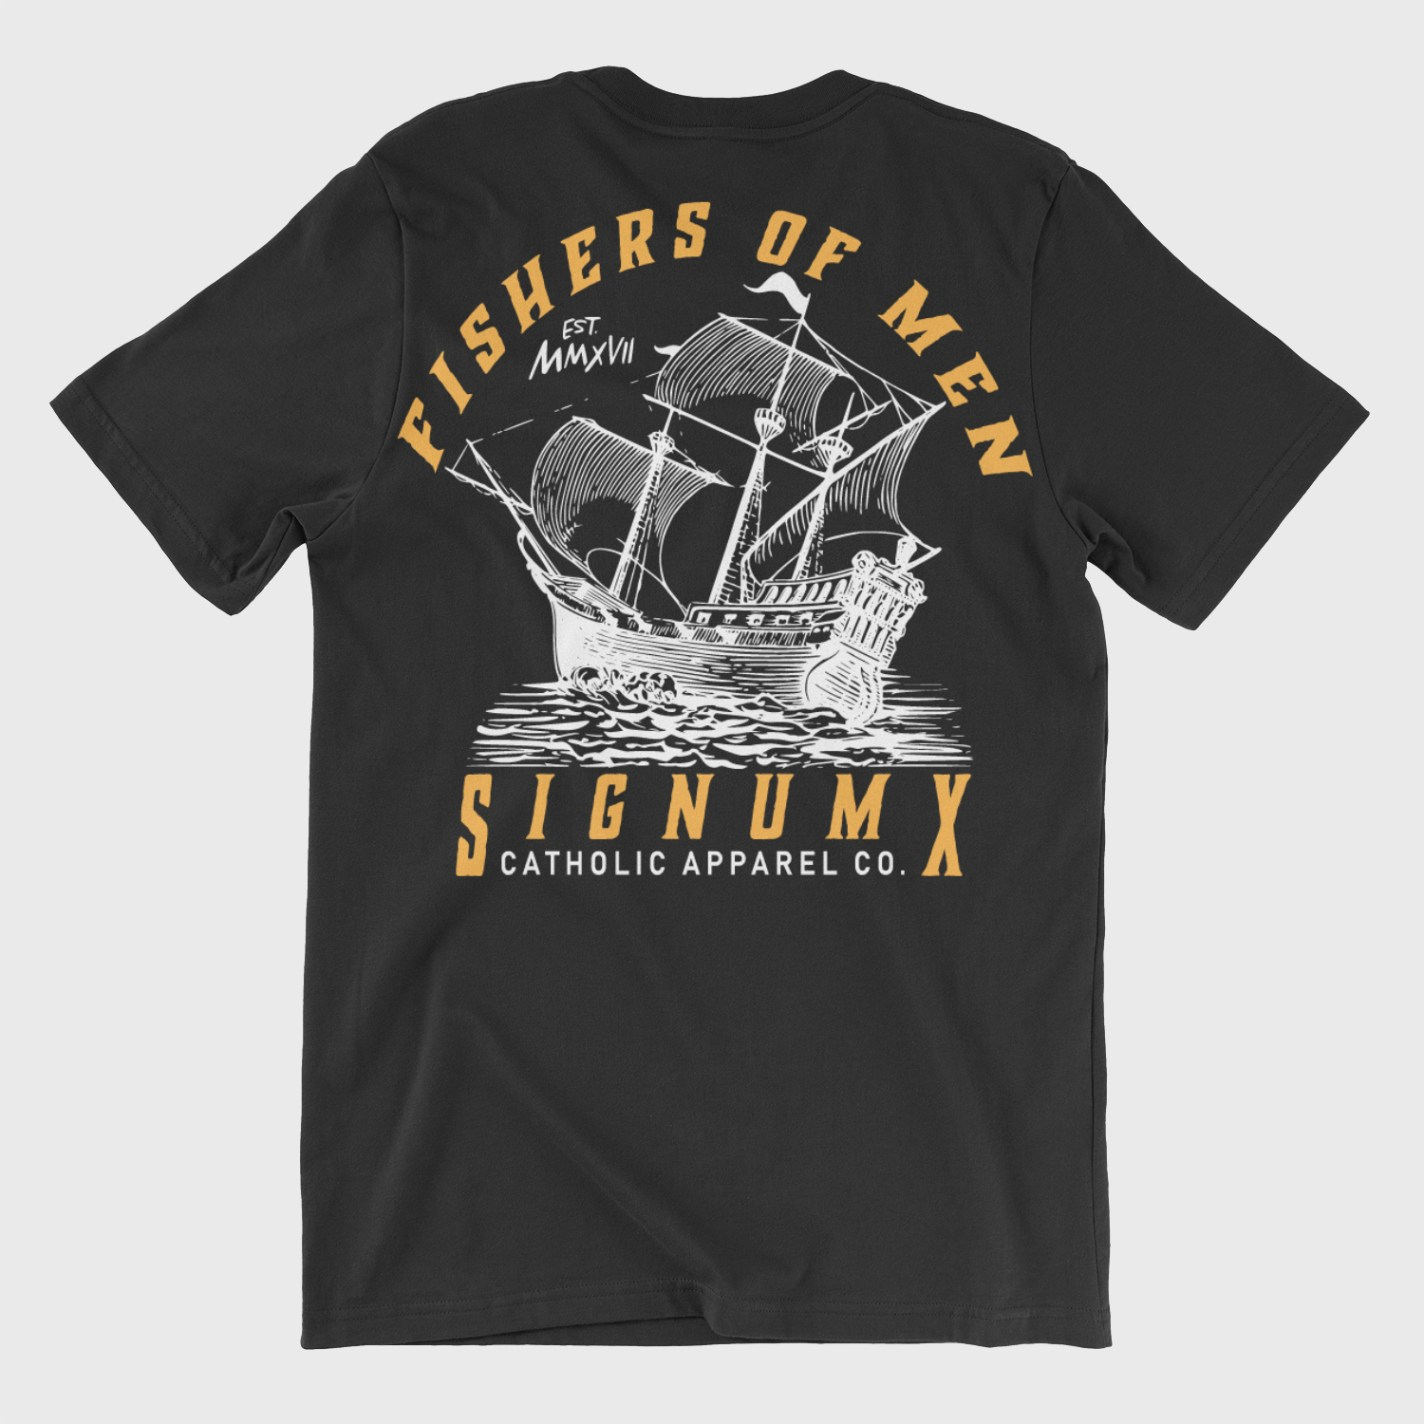 Fishers of Men T shirt